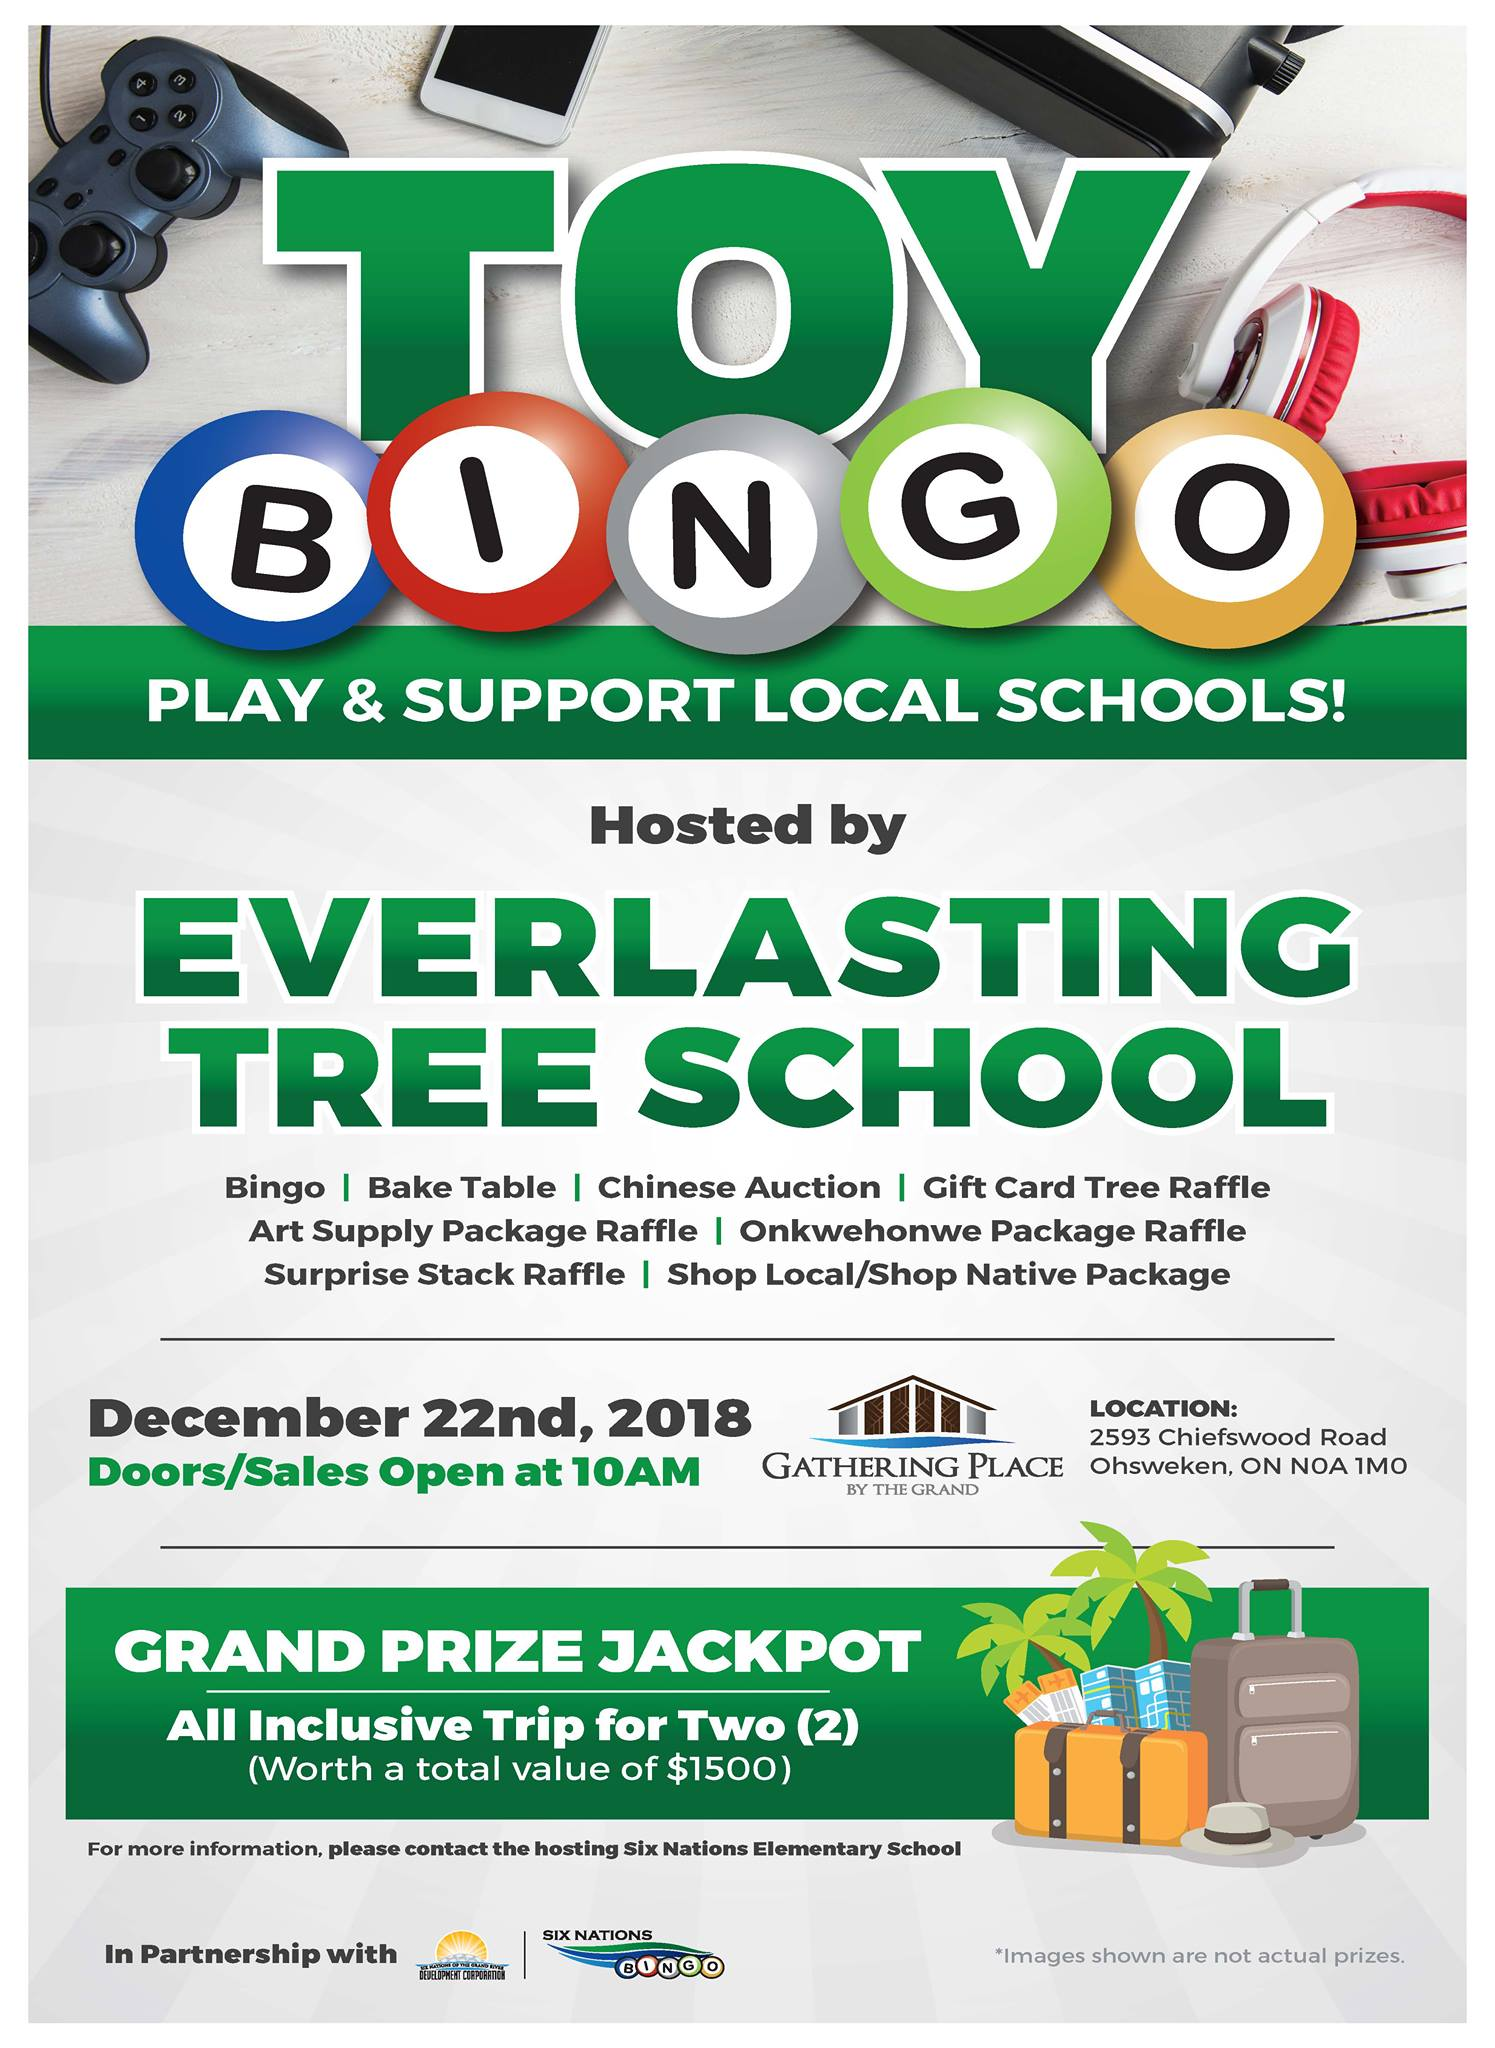 Six Nations Bingo Presents Toy Bingo in Support of Everlasting Tree School